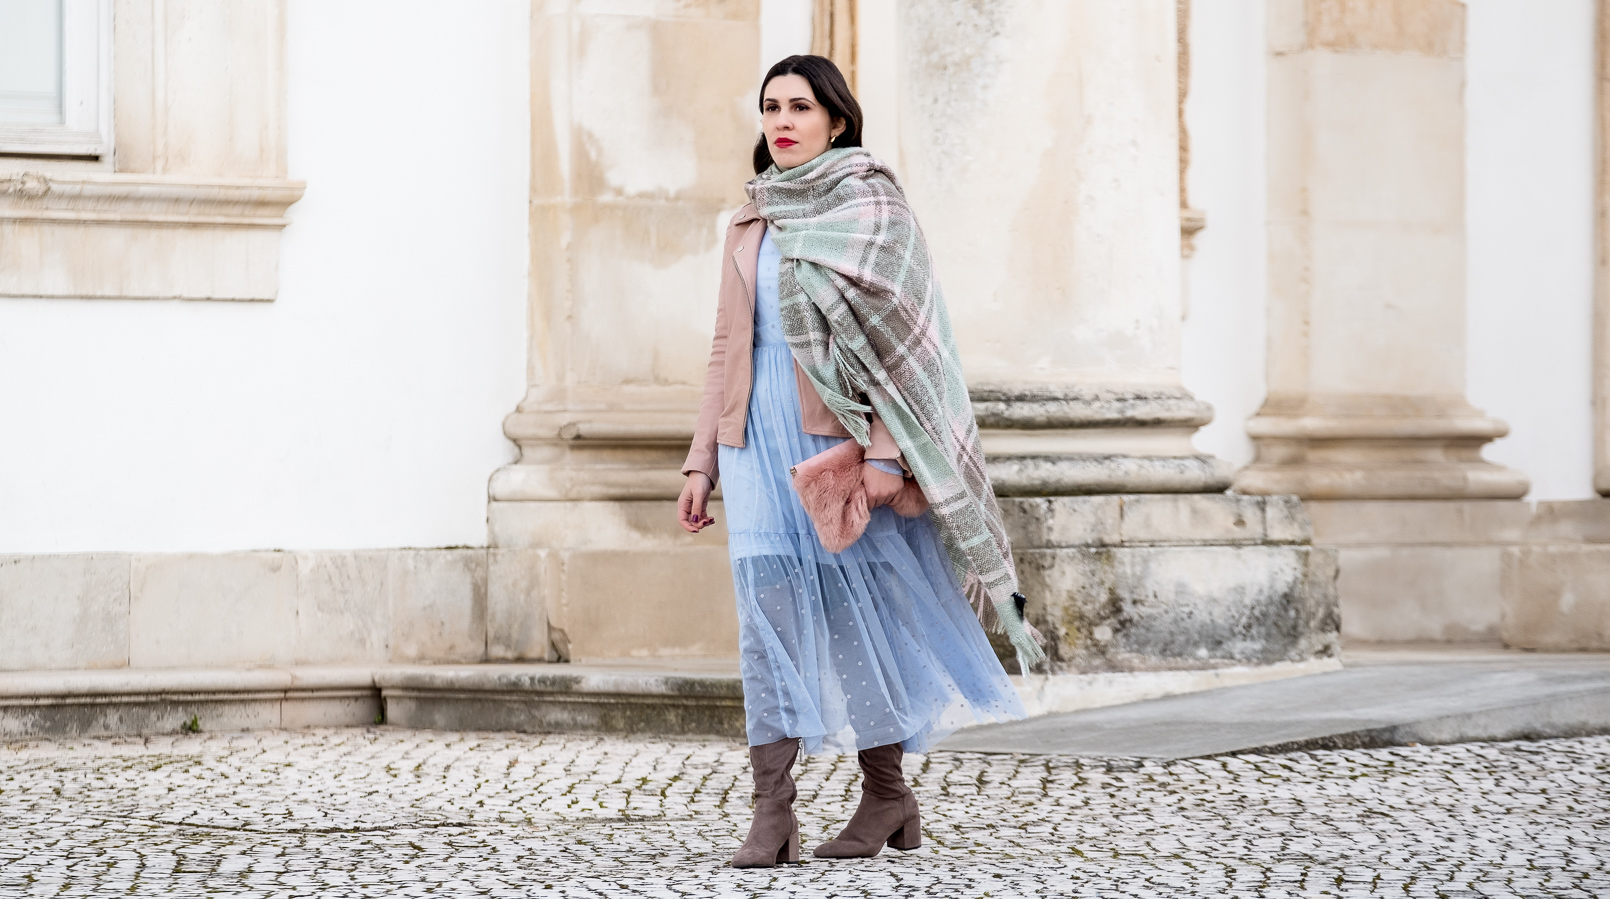 Le Fashionaire Mixing textures on winter baby blue organza dots maxi topshop dress big scarf chess tartan wool parfois faux fur pale pink stradivarius clutch 1854F EN